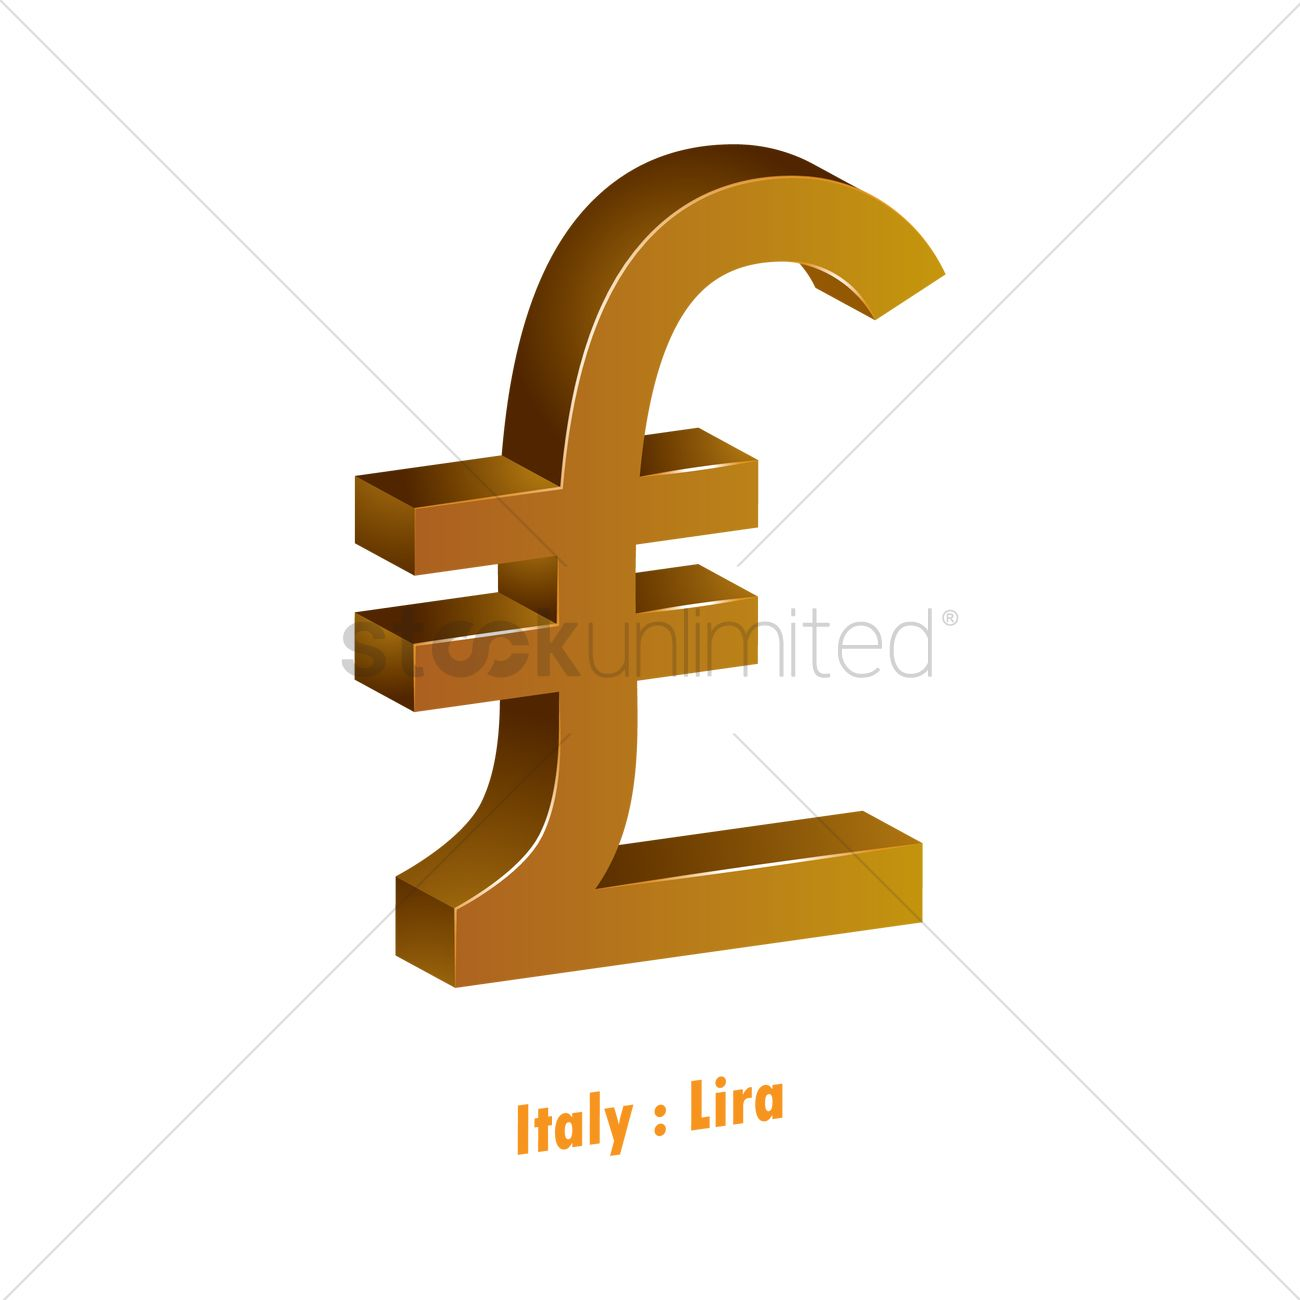 Lira Currency Symbol Vector Image 1821585 Stockunlimited